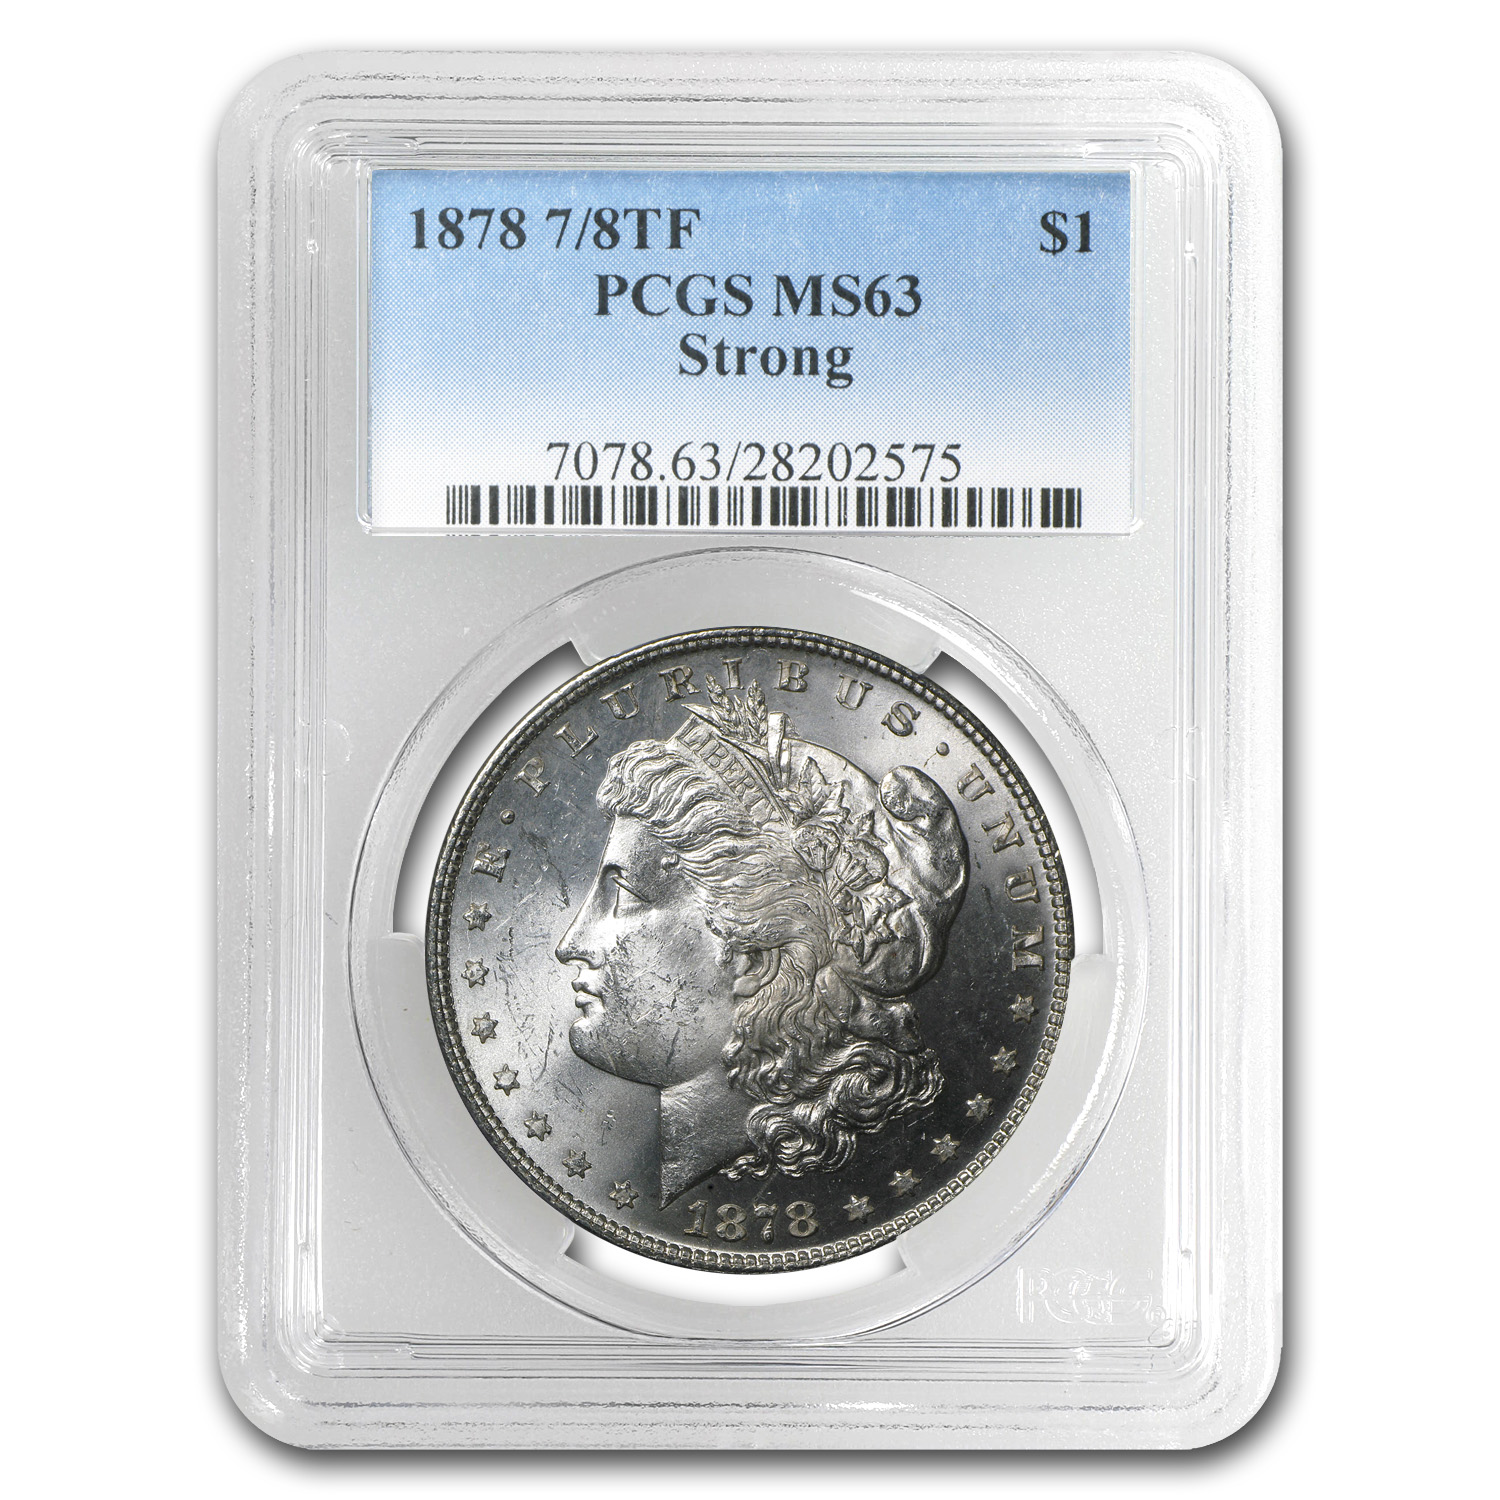 1878 Morgan Dollar 7/8 TF MS-63 PCGS (Strong)